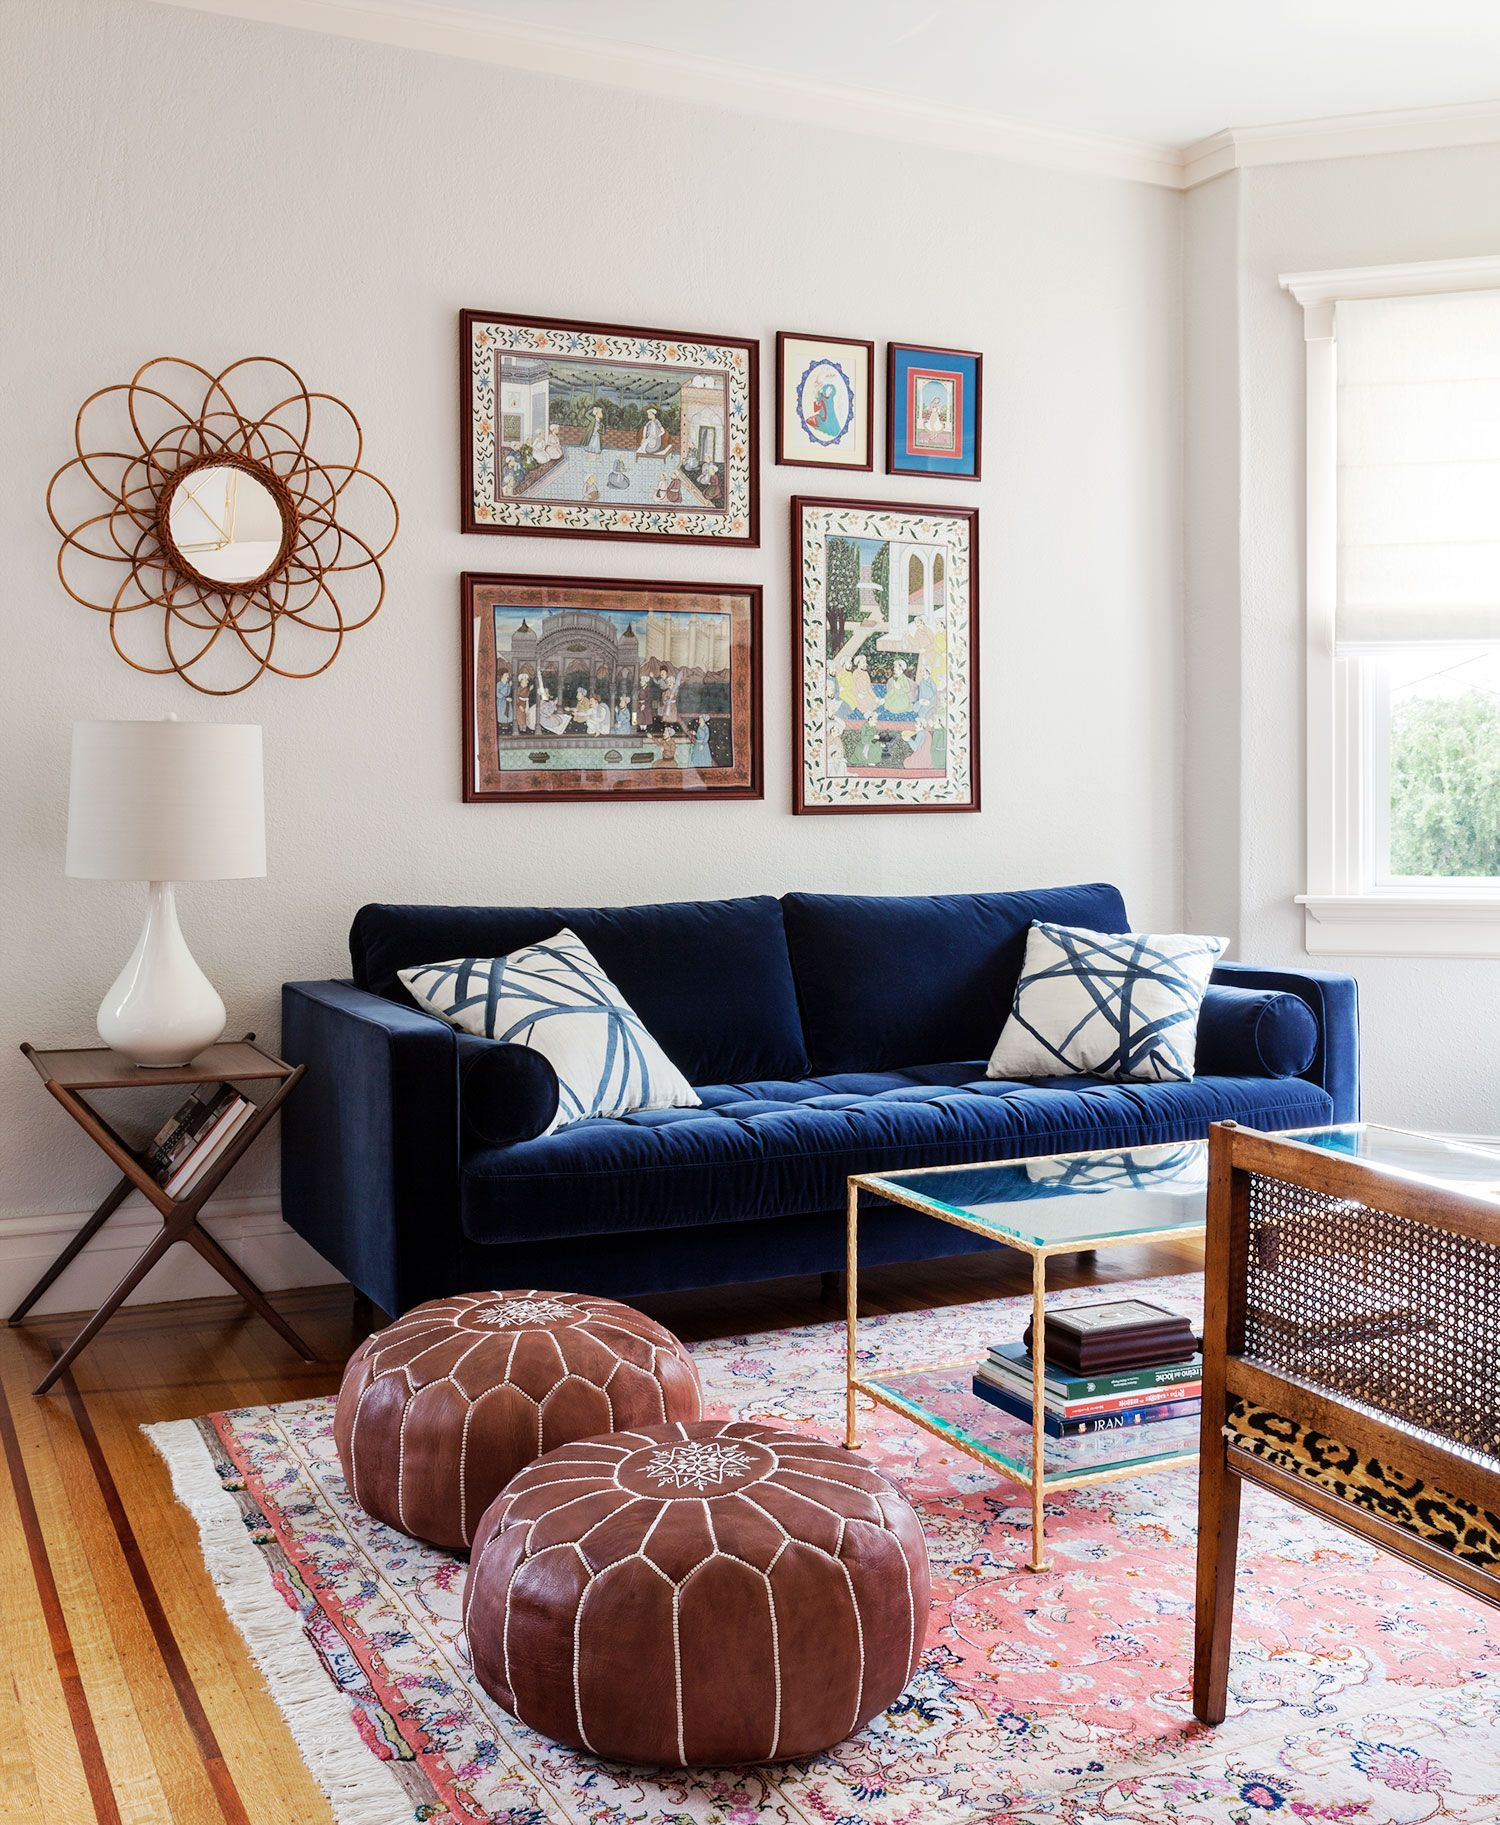 Pin By Monika On Salon Blue Couch Living Room Blue Sofa Living